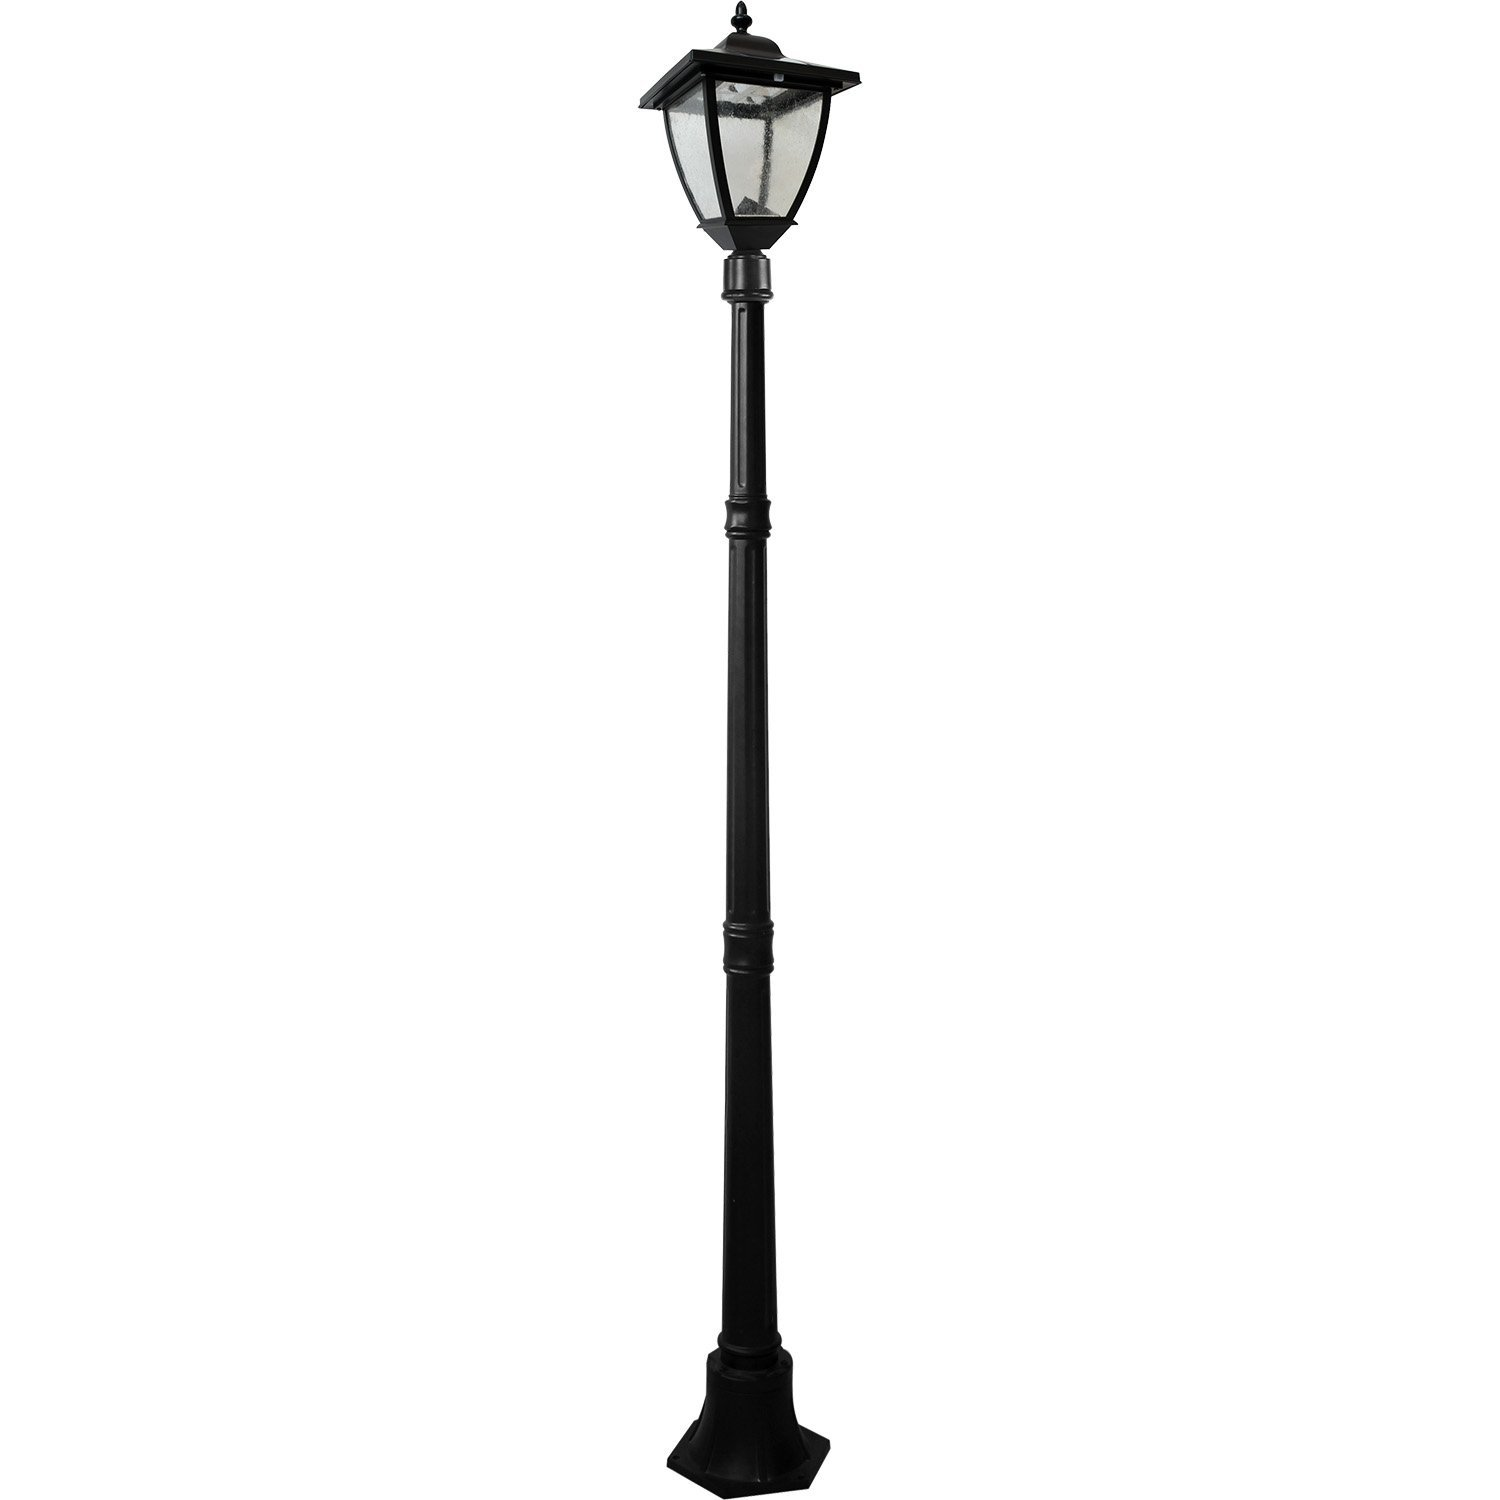 Best Solar Street Light Lamp Posts Ledwatcher